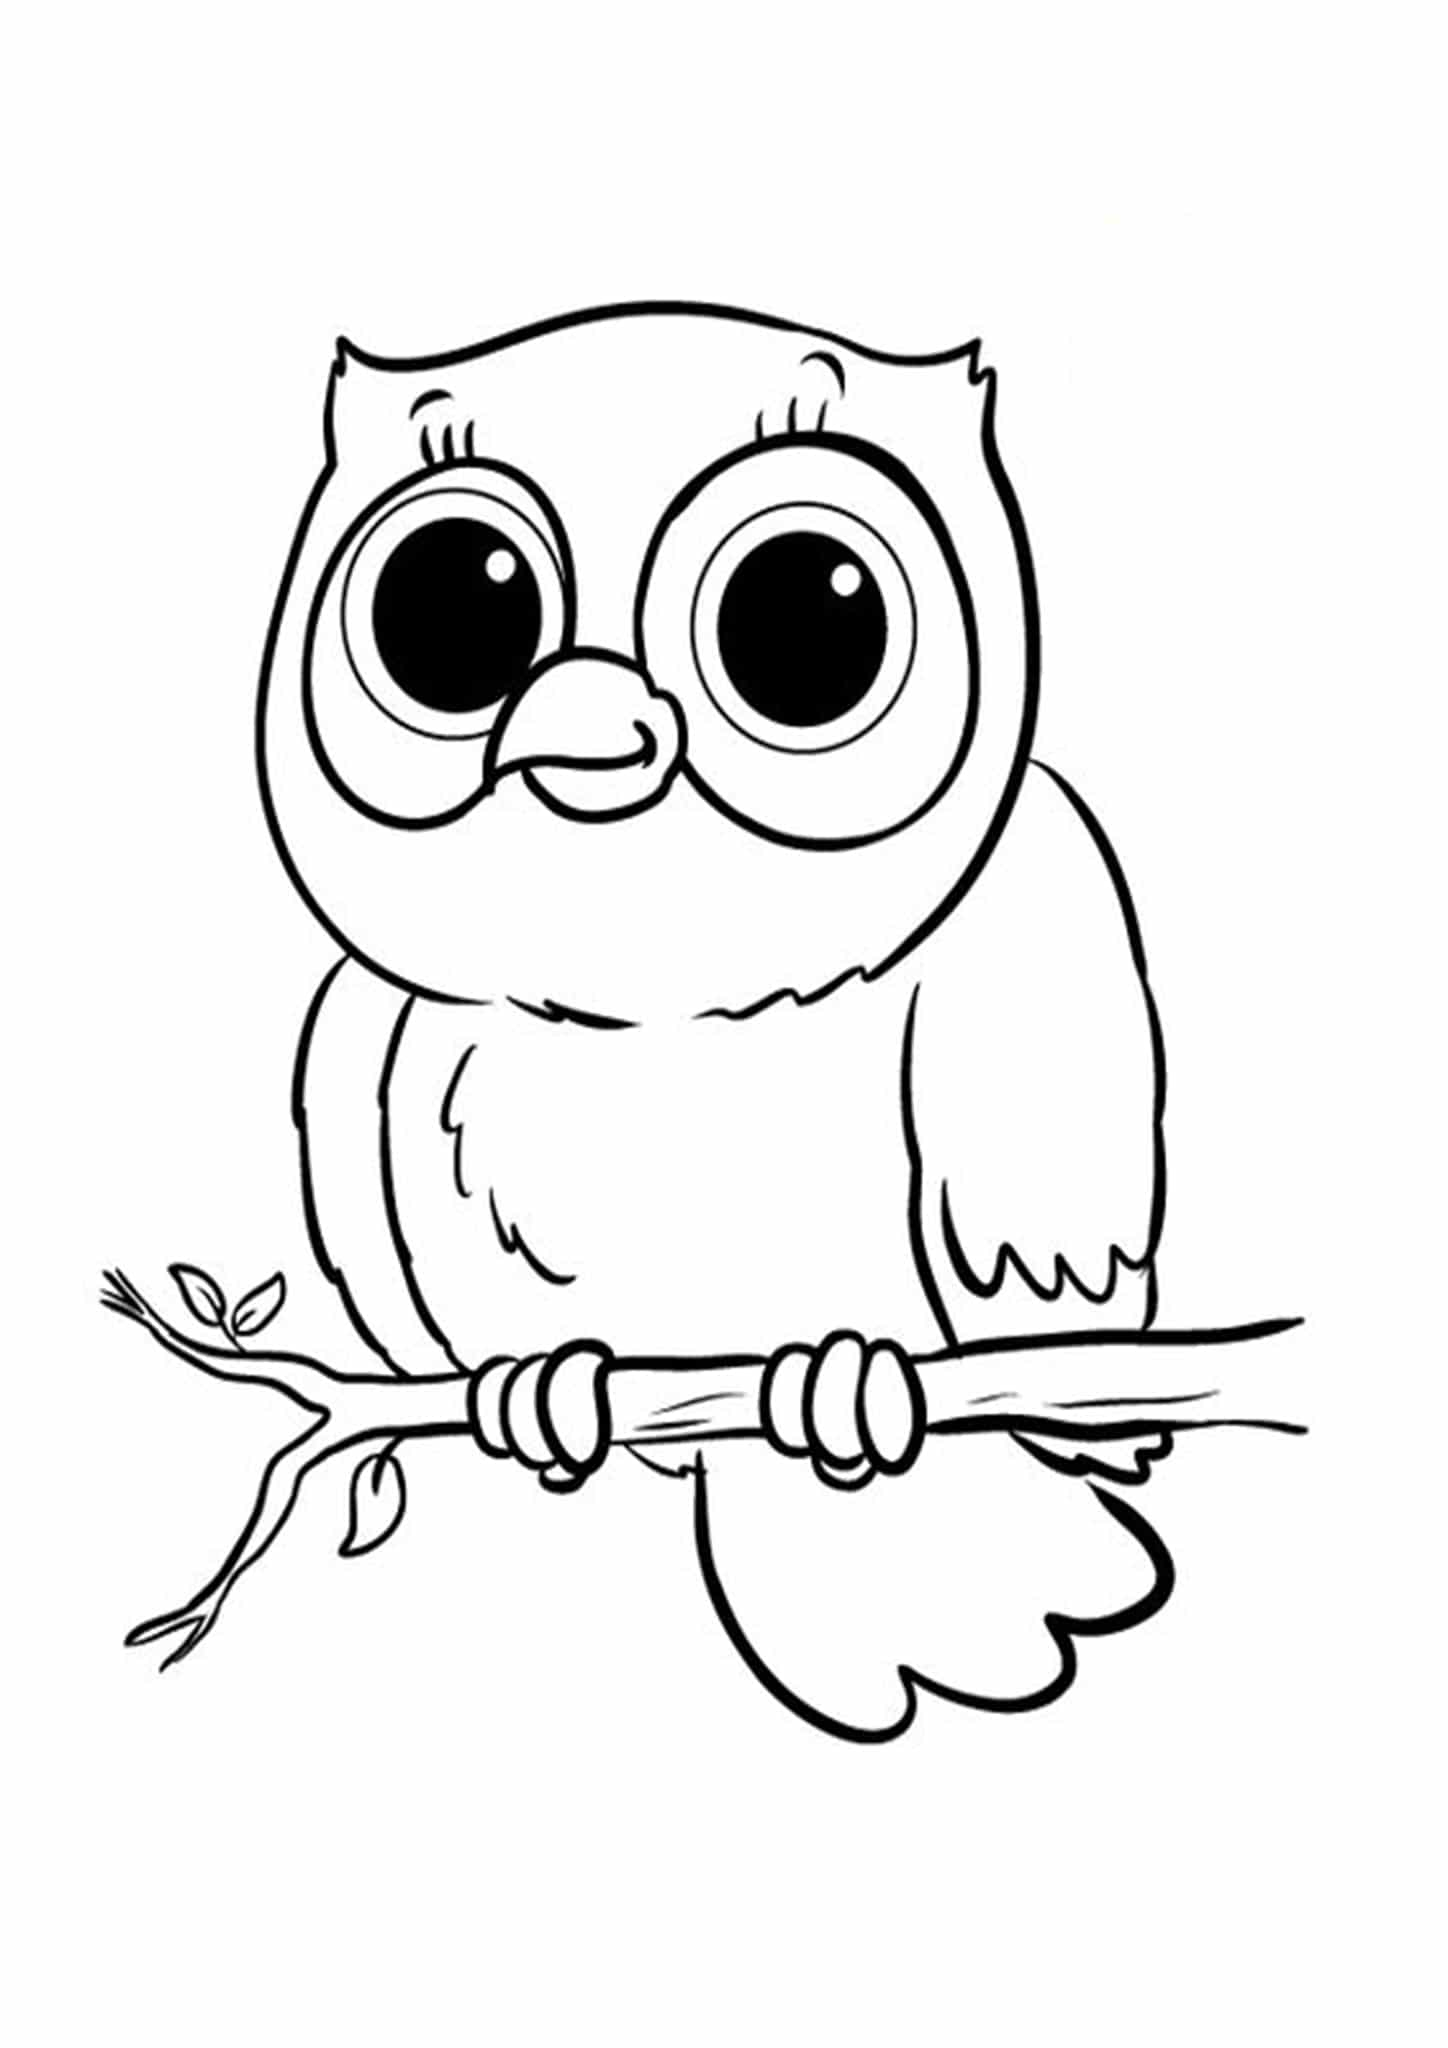 picture of owls to color free easy to print owl coloring pages tulamama of to owls picture color